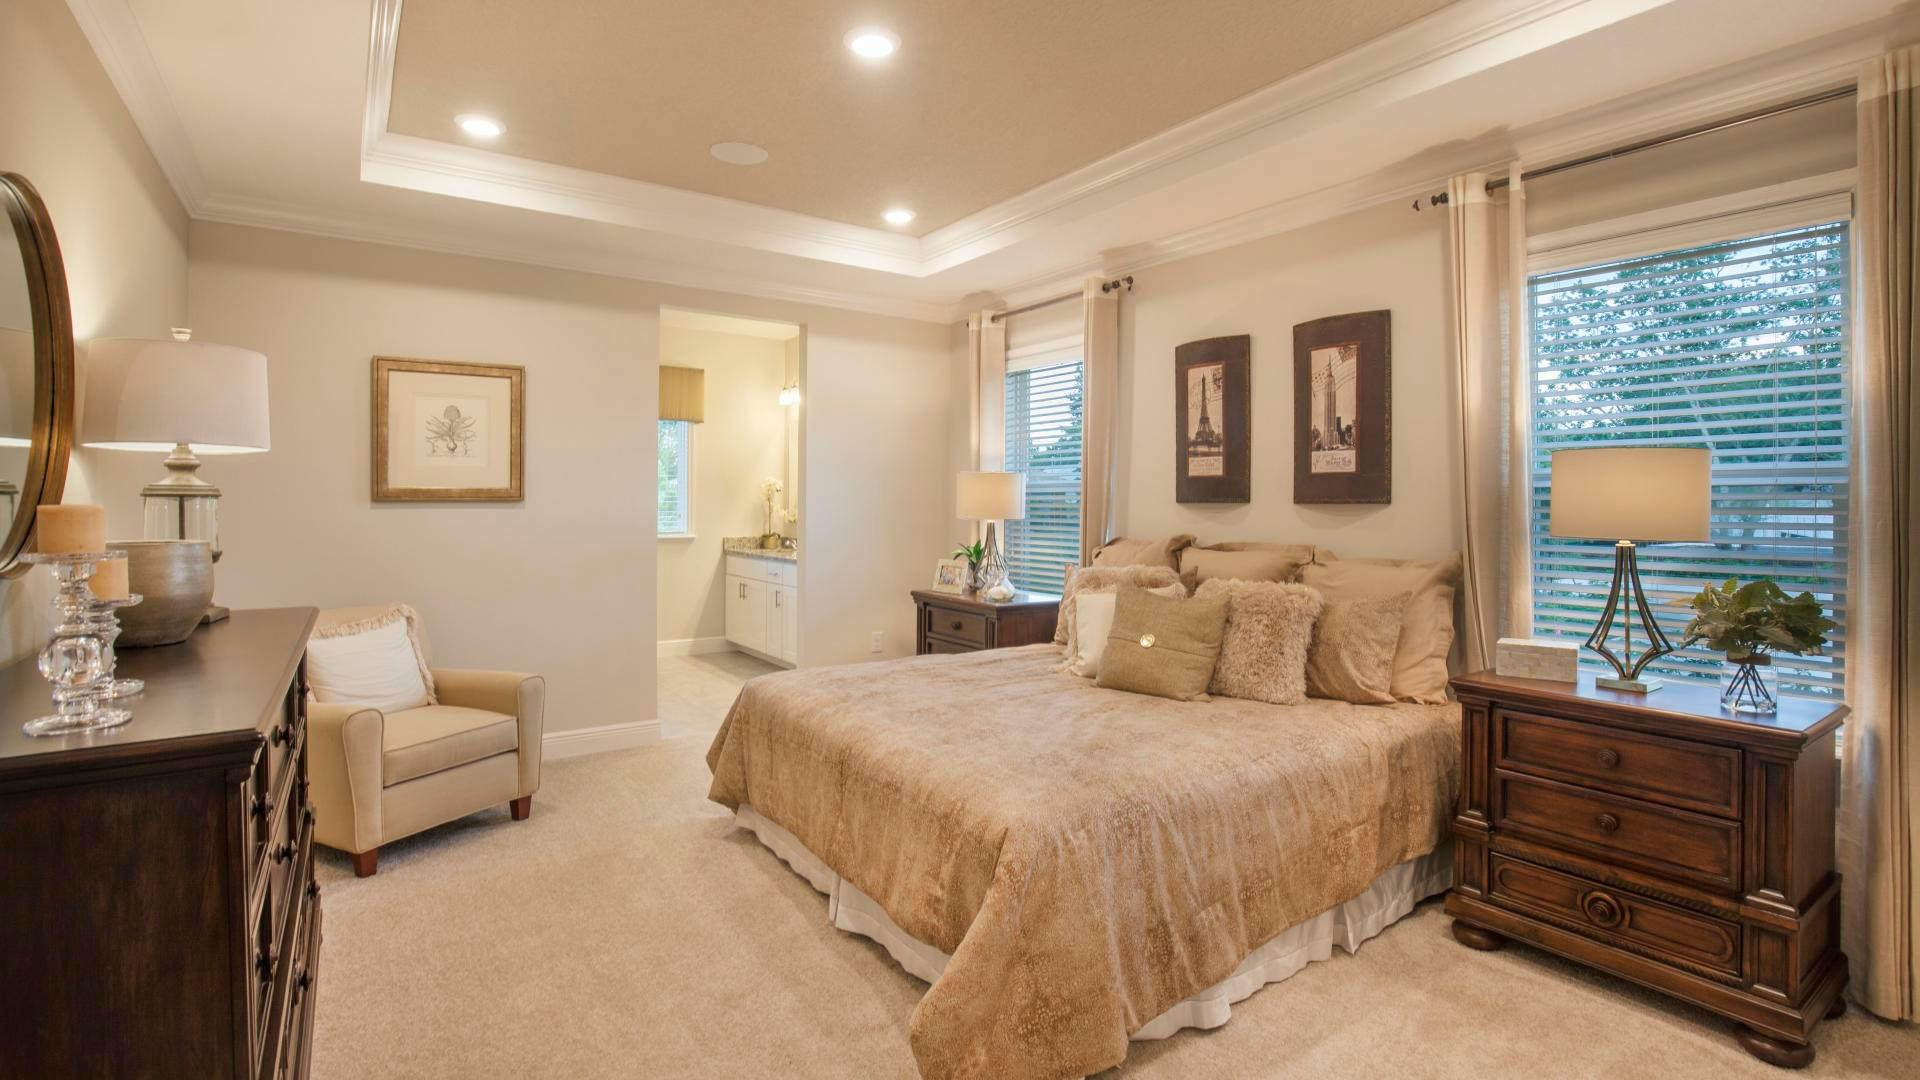 Bedroom featured in the Wilmington By Maronda Homes in Punta Gorda, FL